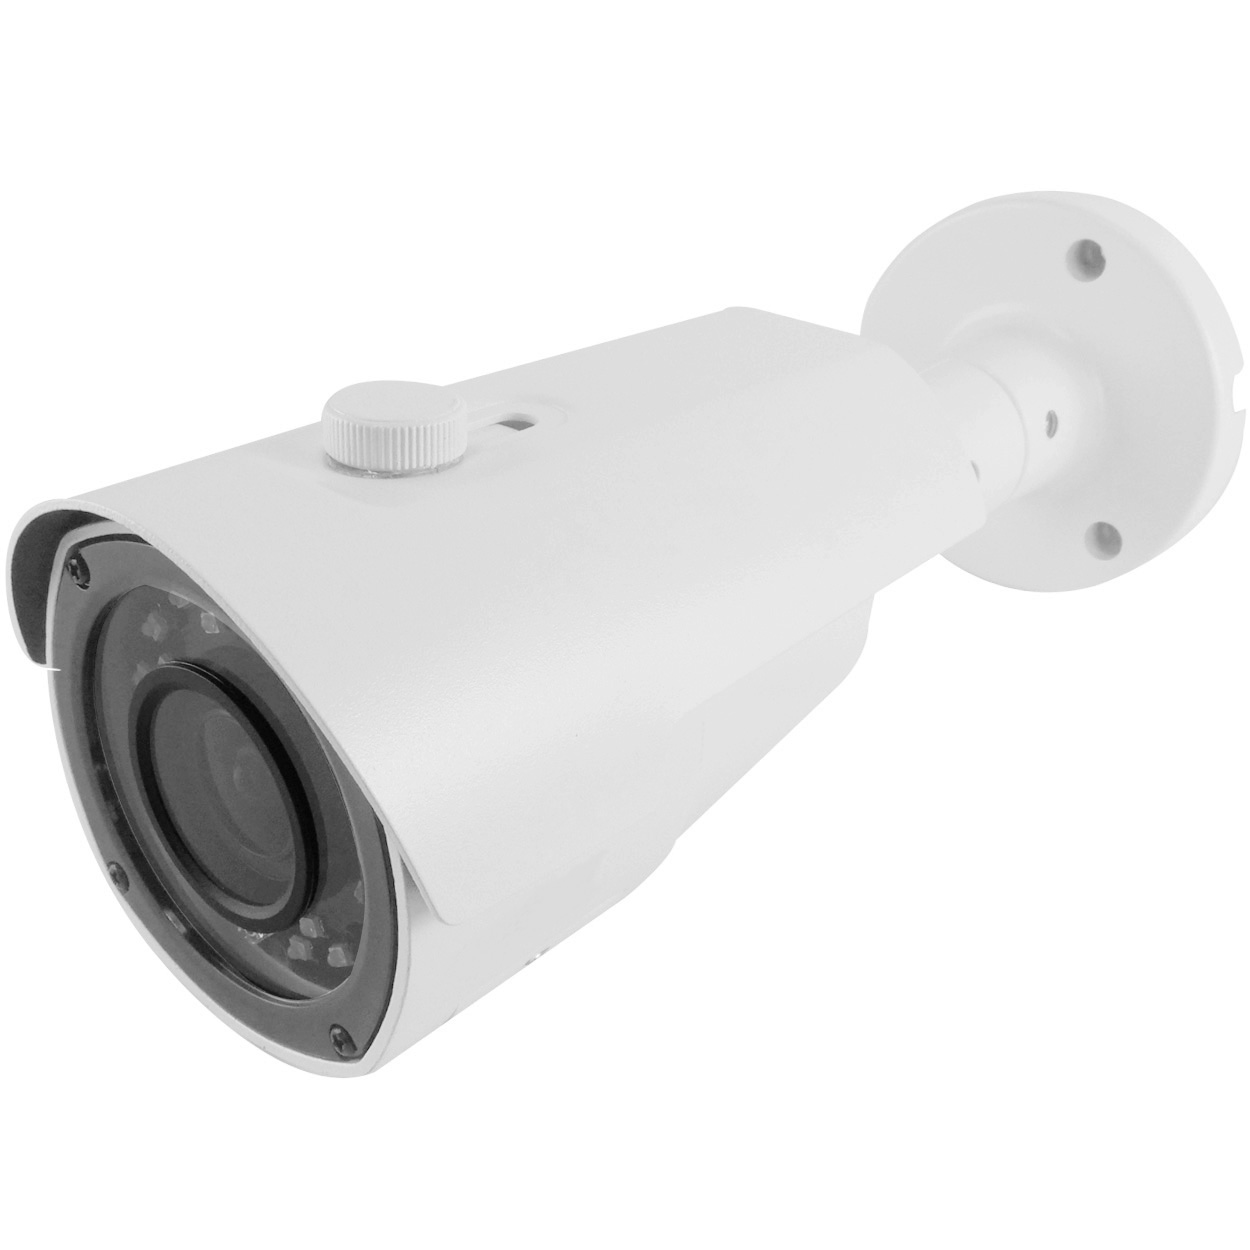 2.1MP Outdoor Bullet Camera, 2.8-12mm Varifocal Lens, HD-TVI / HDCVI / AHD / CVBS